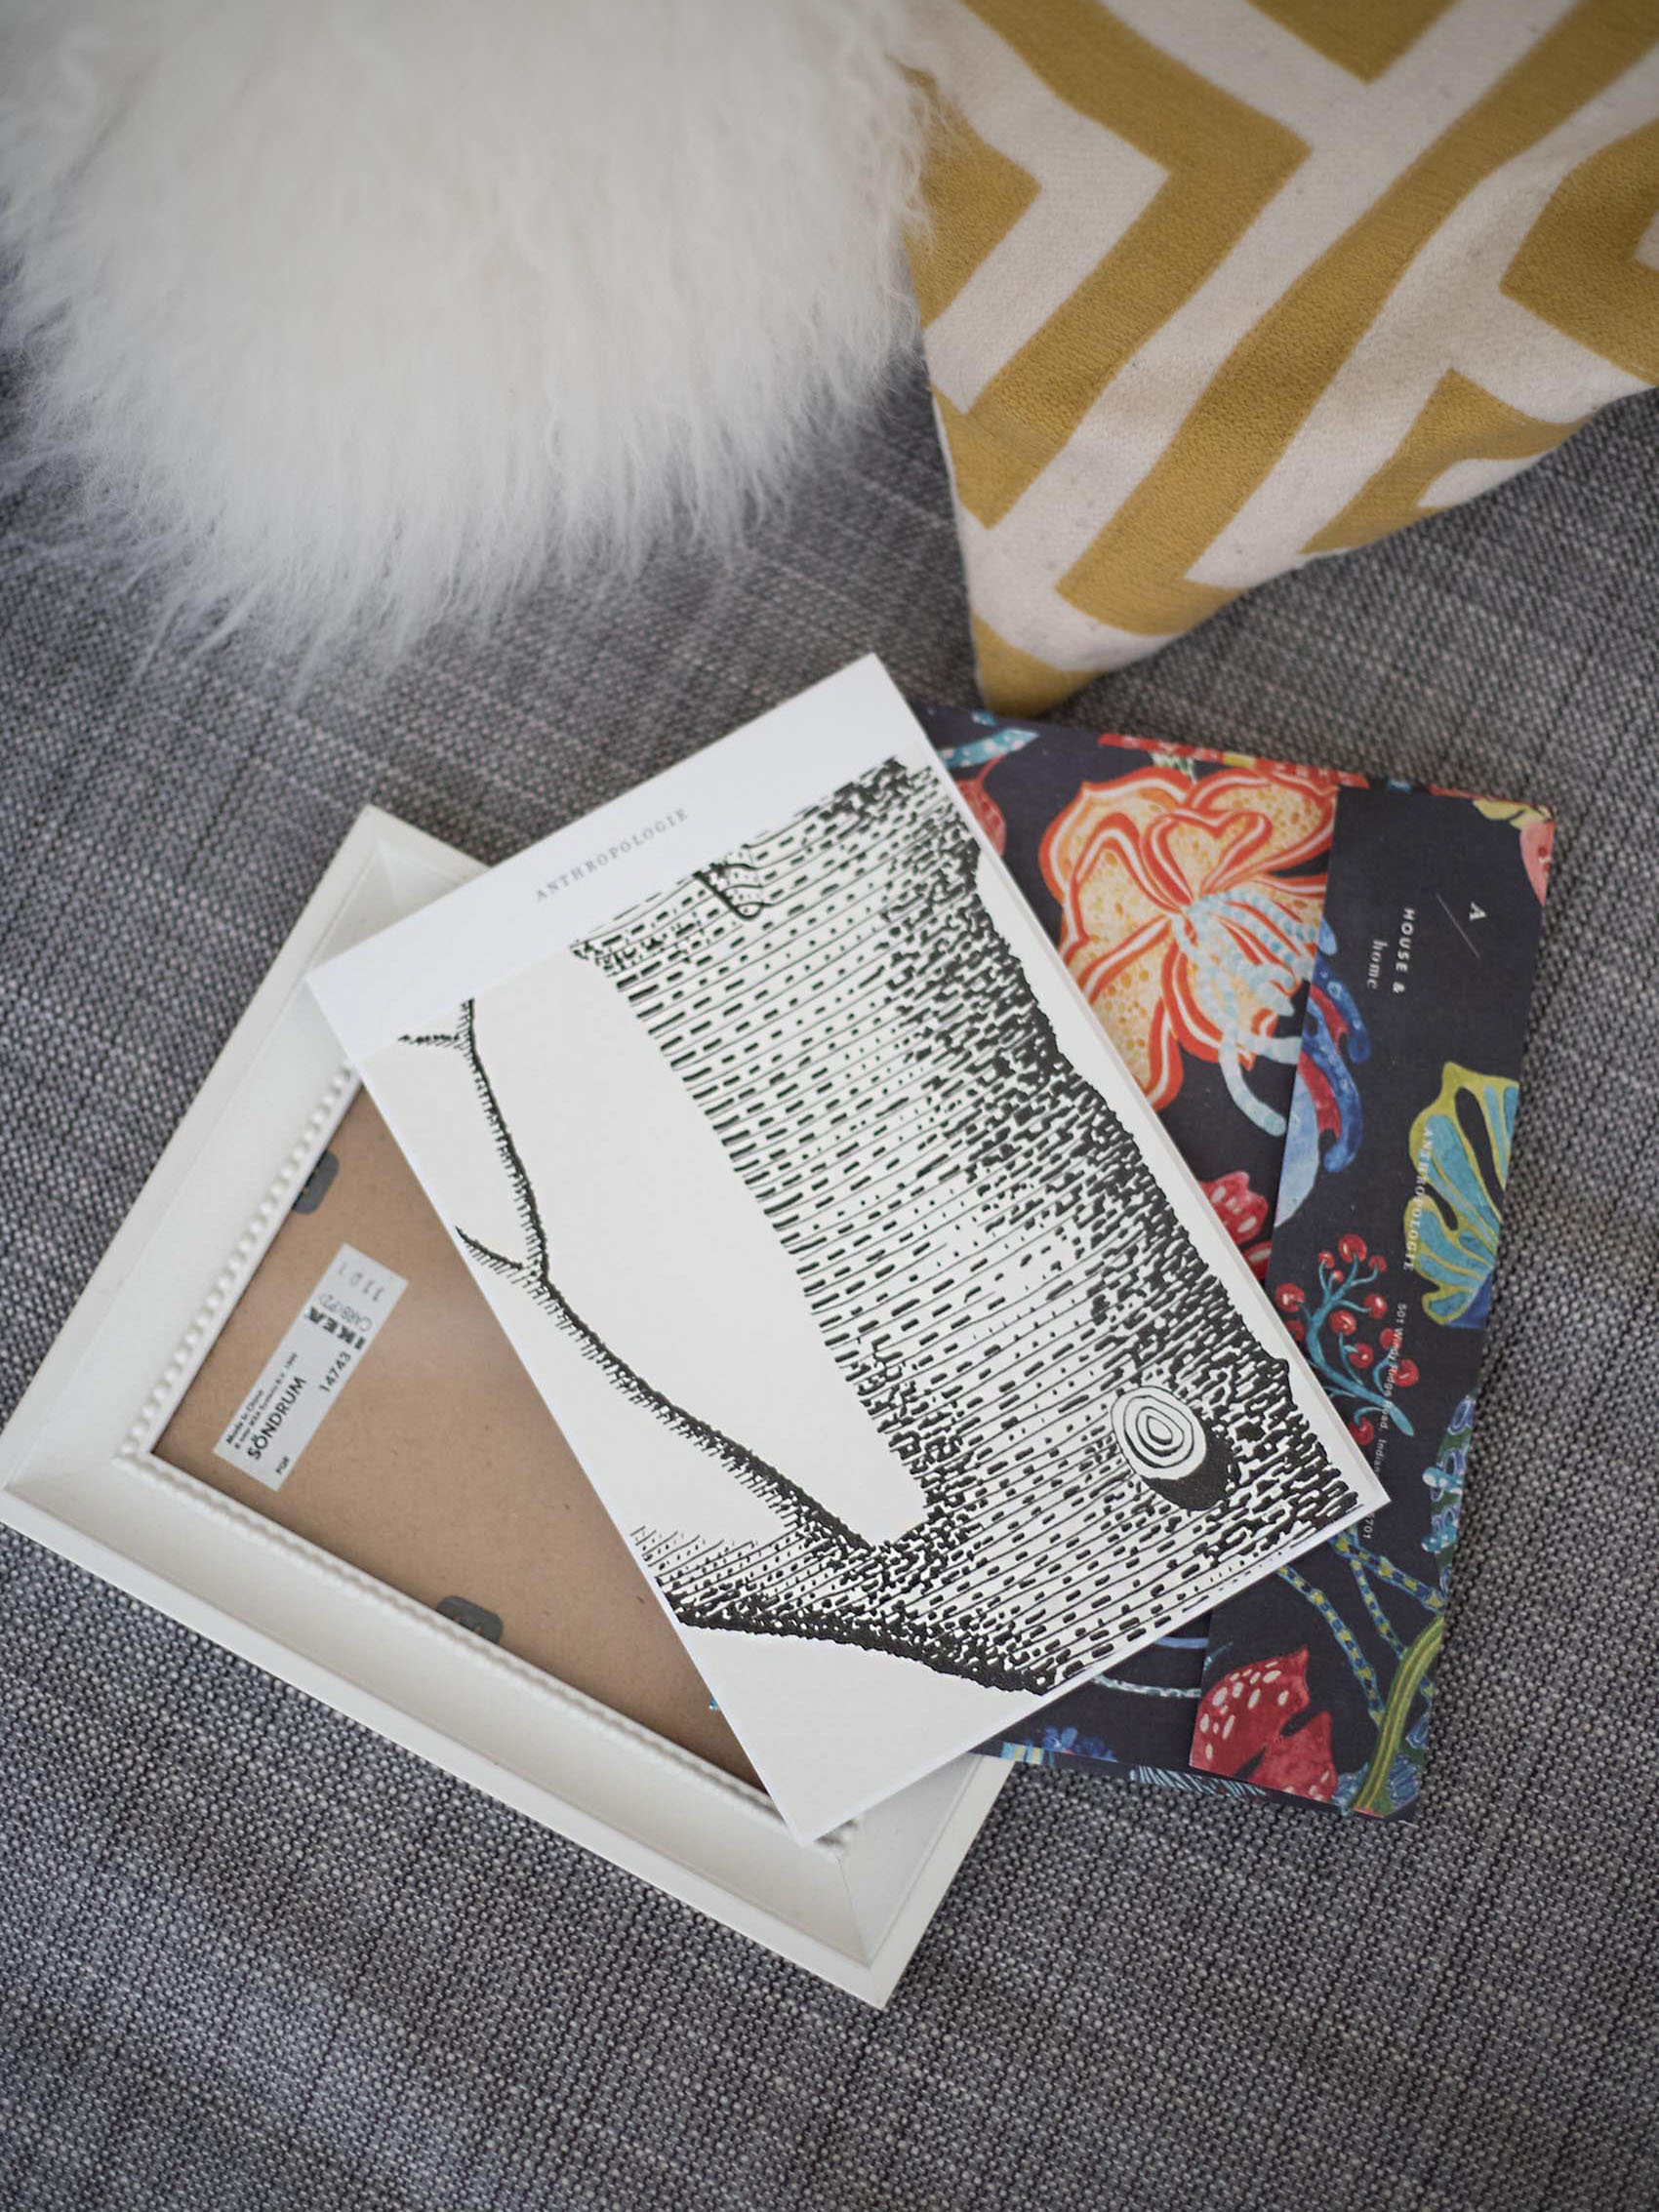 Anthropologie Wallpaper Sample Art Jeans And A Teacup